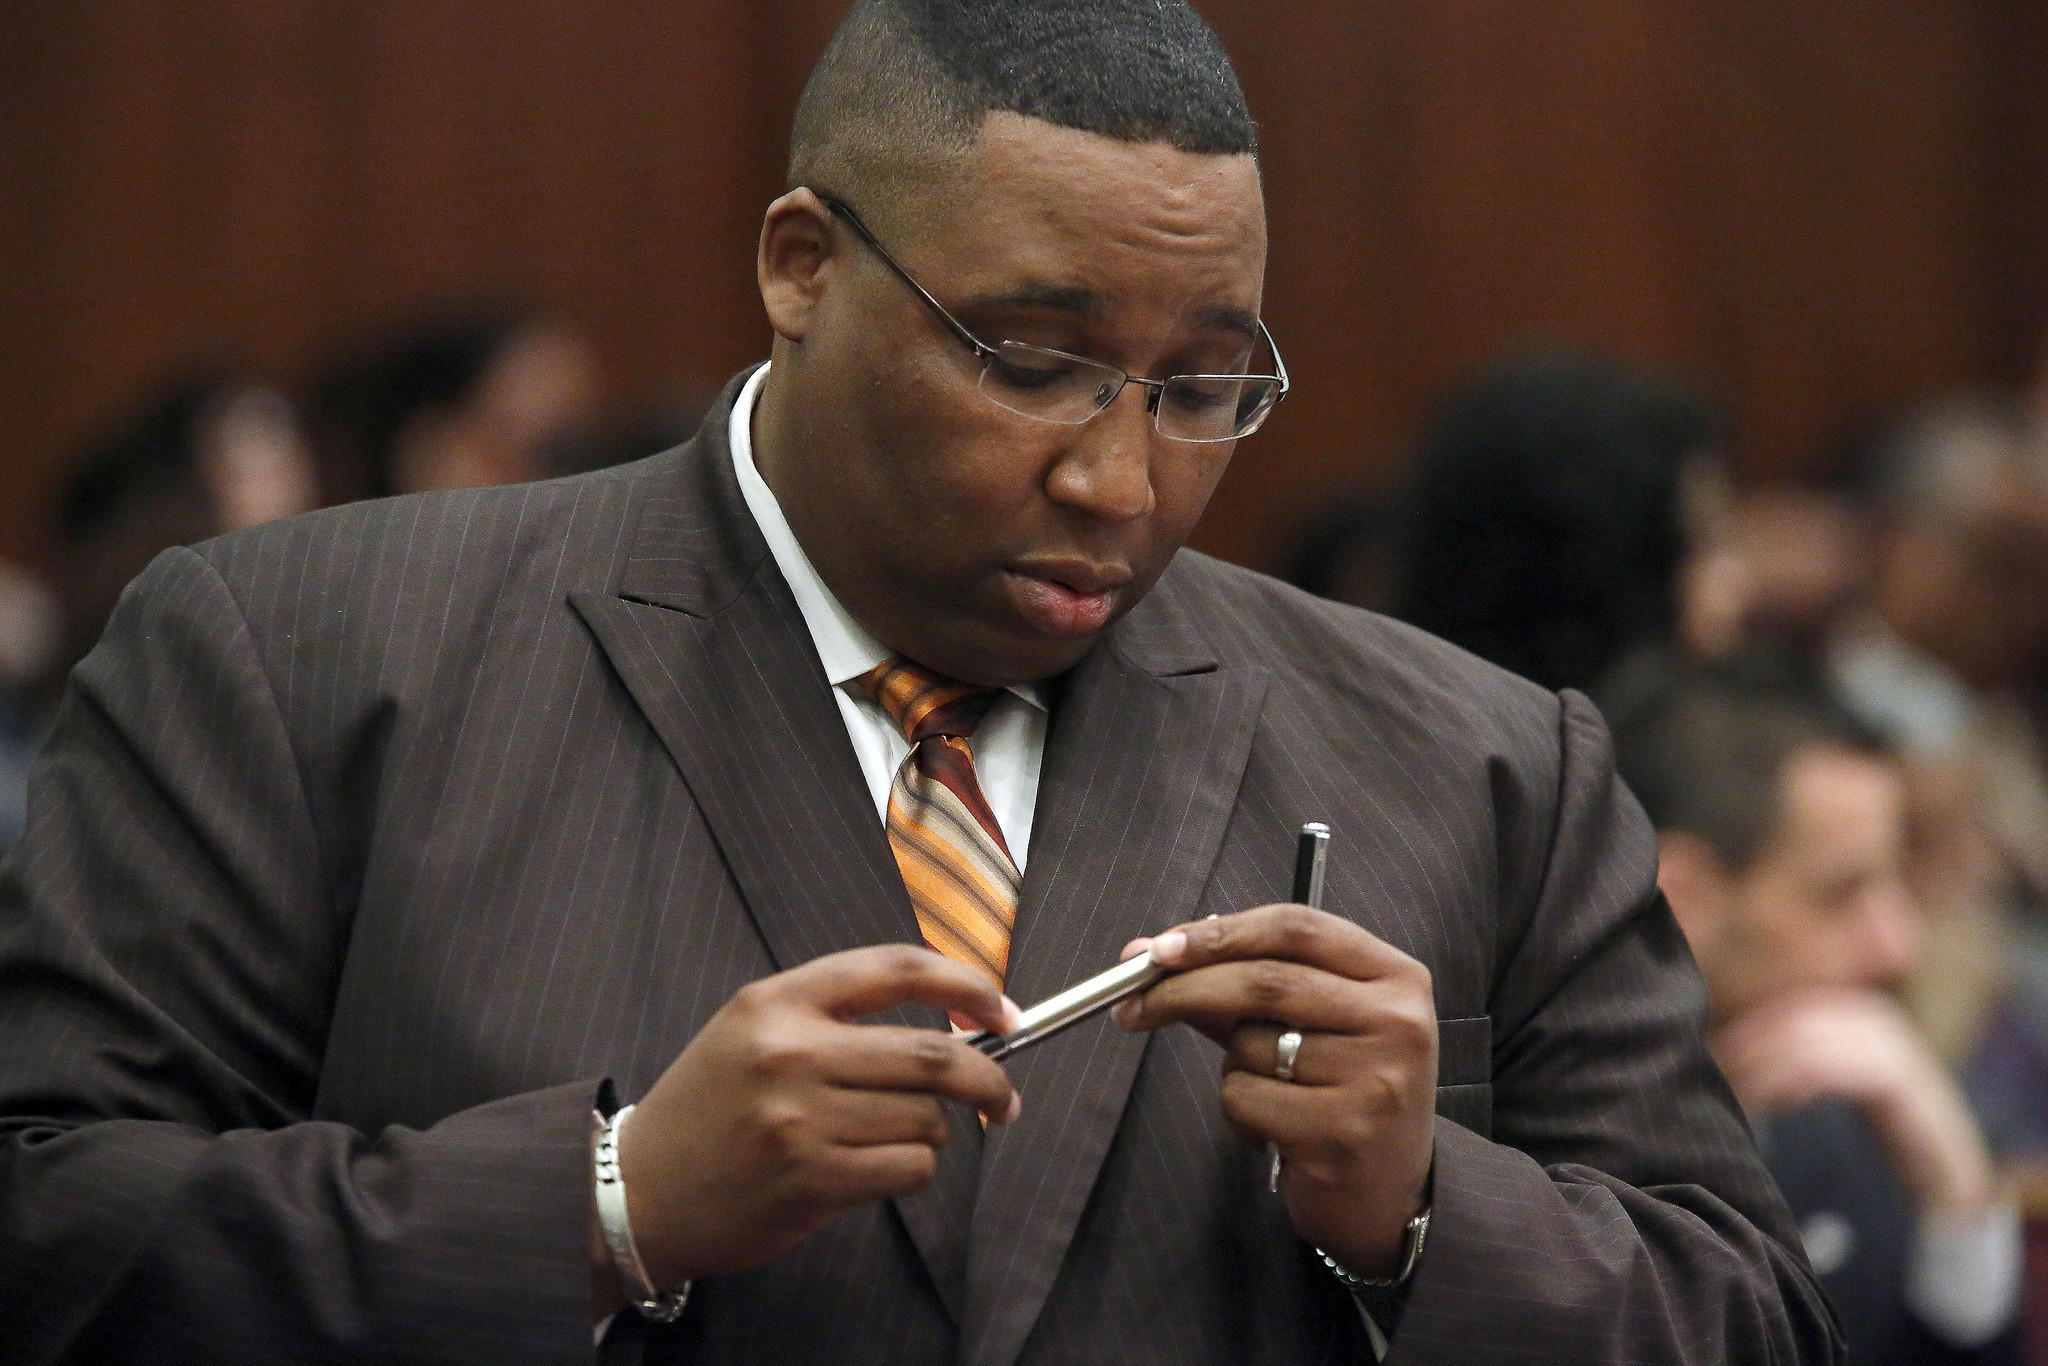 Ald. Jason Ervin, 28th, holds an electronic cigarette being passed around during a City Council discussion on the devices.